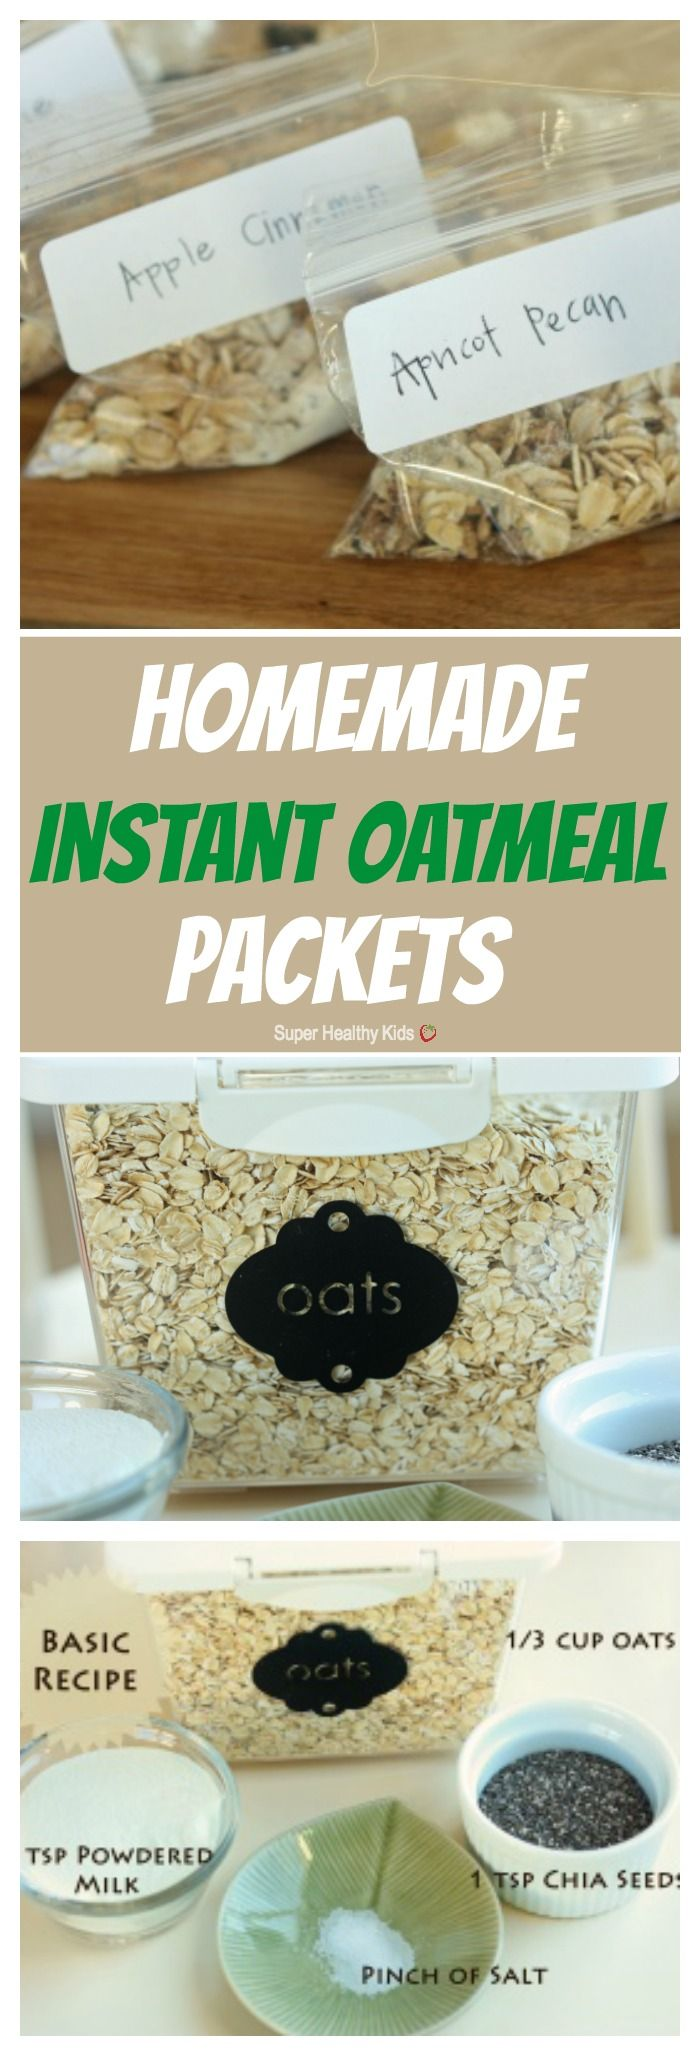 Homemade Instant Oatmeal Packets. For a healthy, quick, and inexpensive breakfast, making your own homemade oatmeal packets is the way to go!